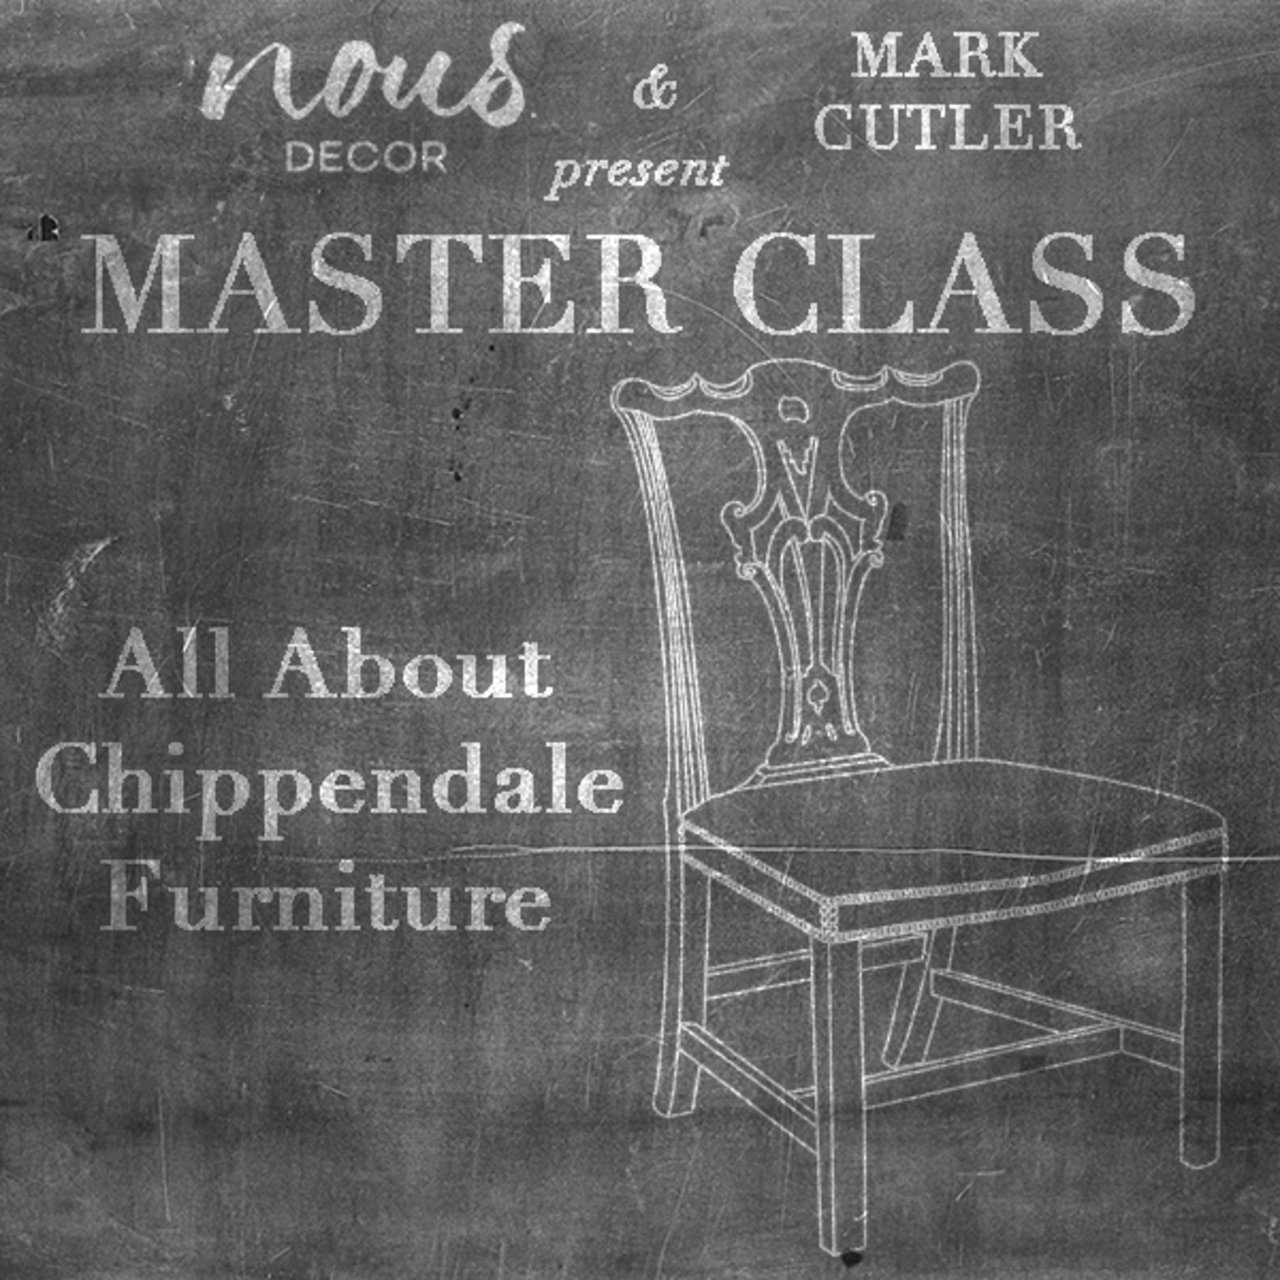 Chippendale Furniture